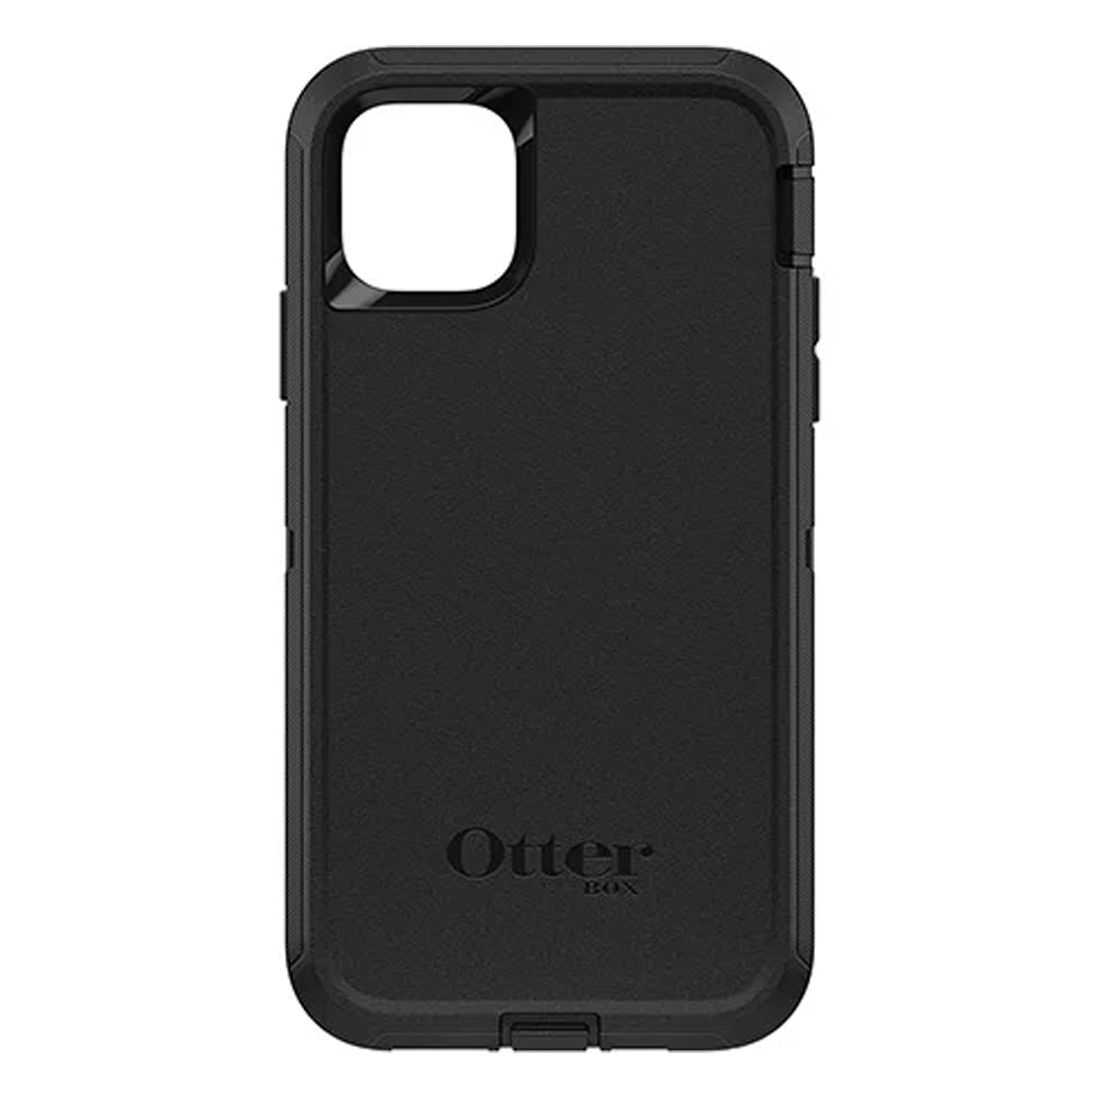 OtterBox Defender Screenless Edition Case For iPhone 11 Pro Max - Black